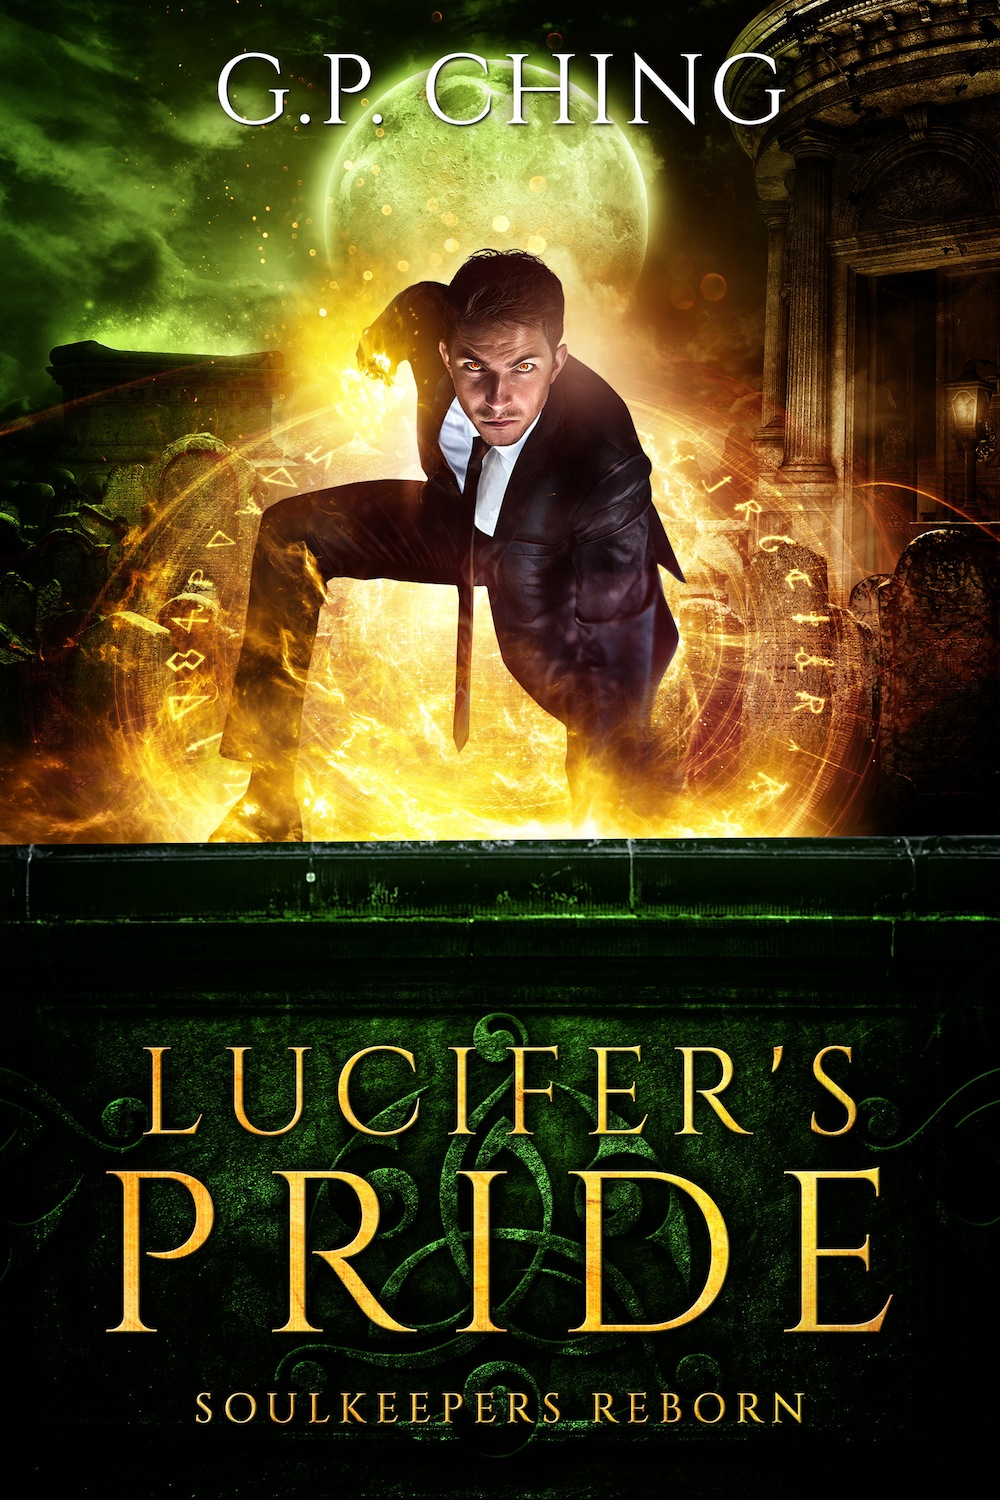 Lucifers pride cover reveal